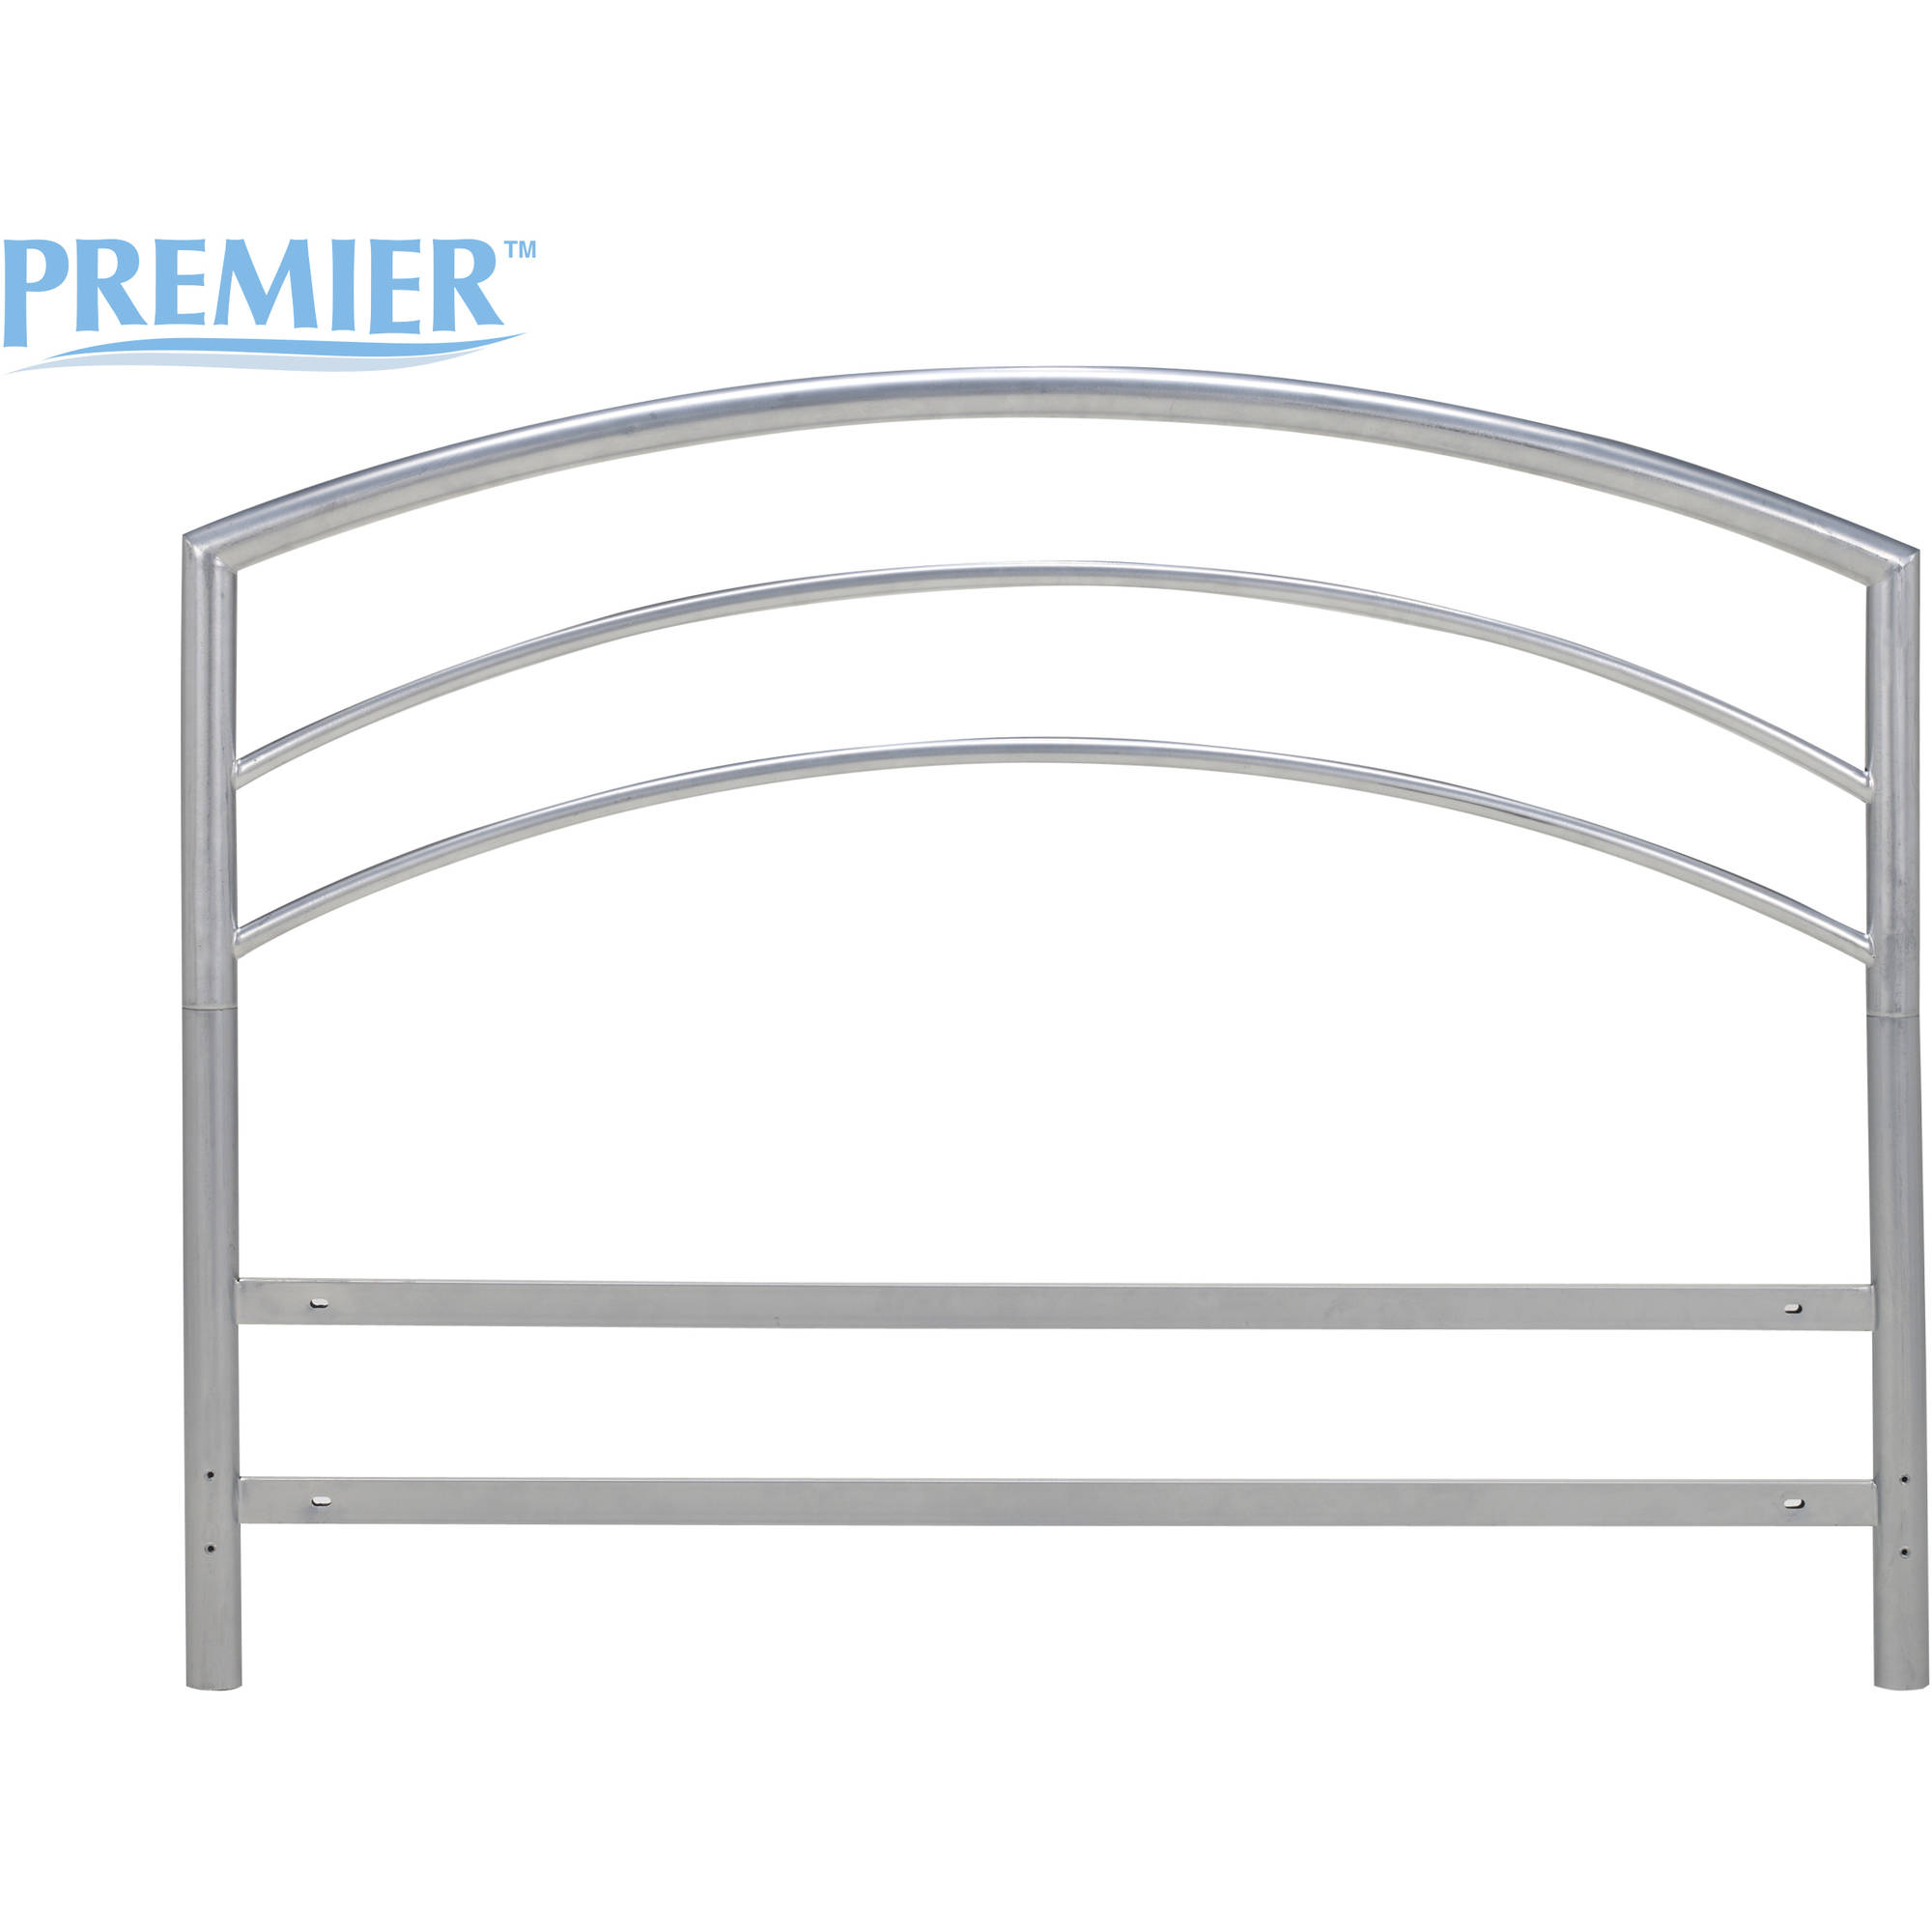 Premier Ellipse Metal Headboard